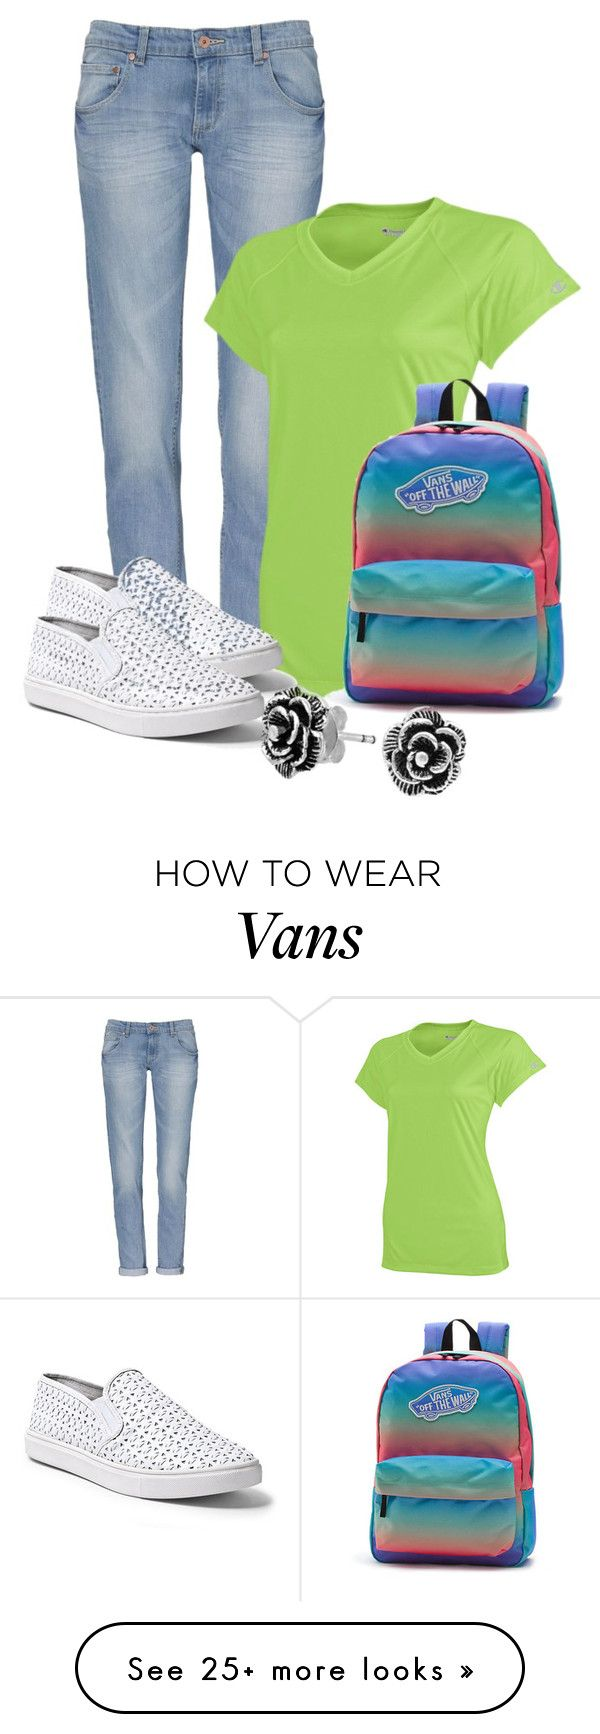 """Untitled #2972"" by janicemckay on Polyvore featuring Champion, Steve Madden, Vans and Bling Jewelry"